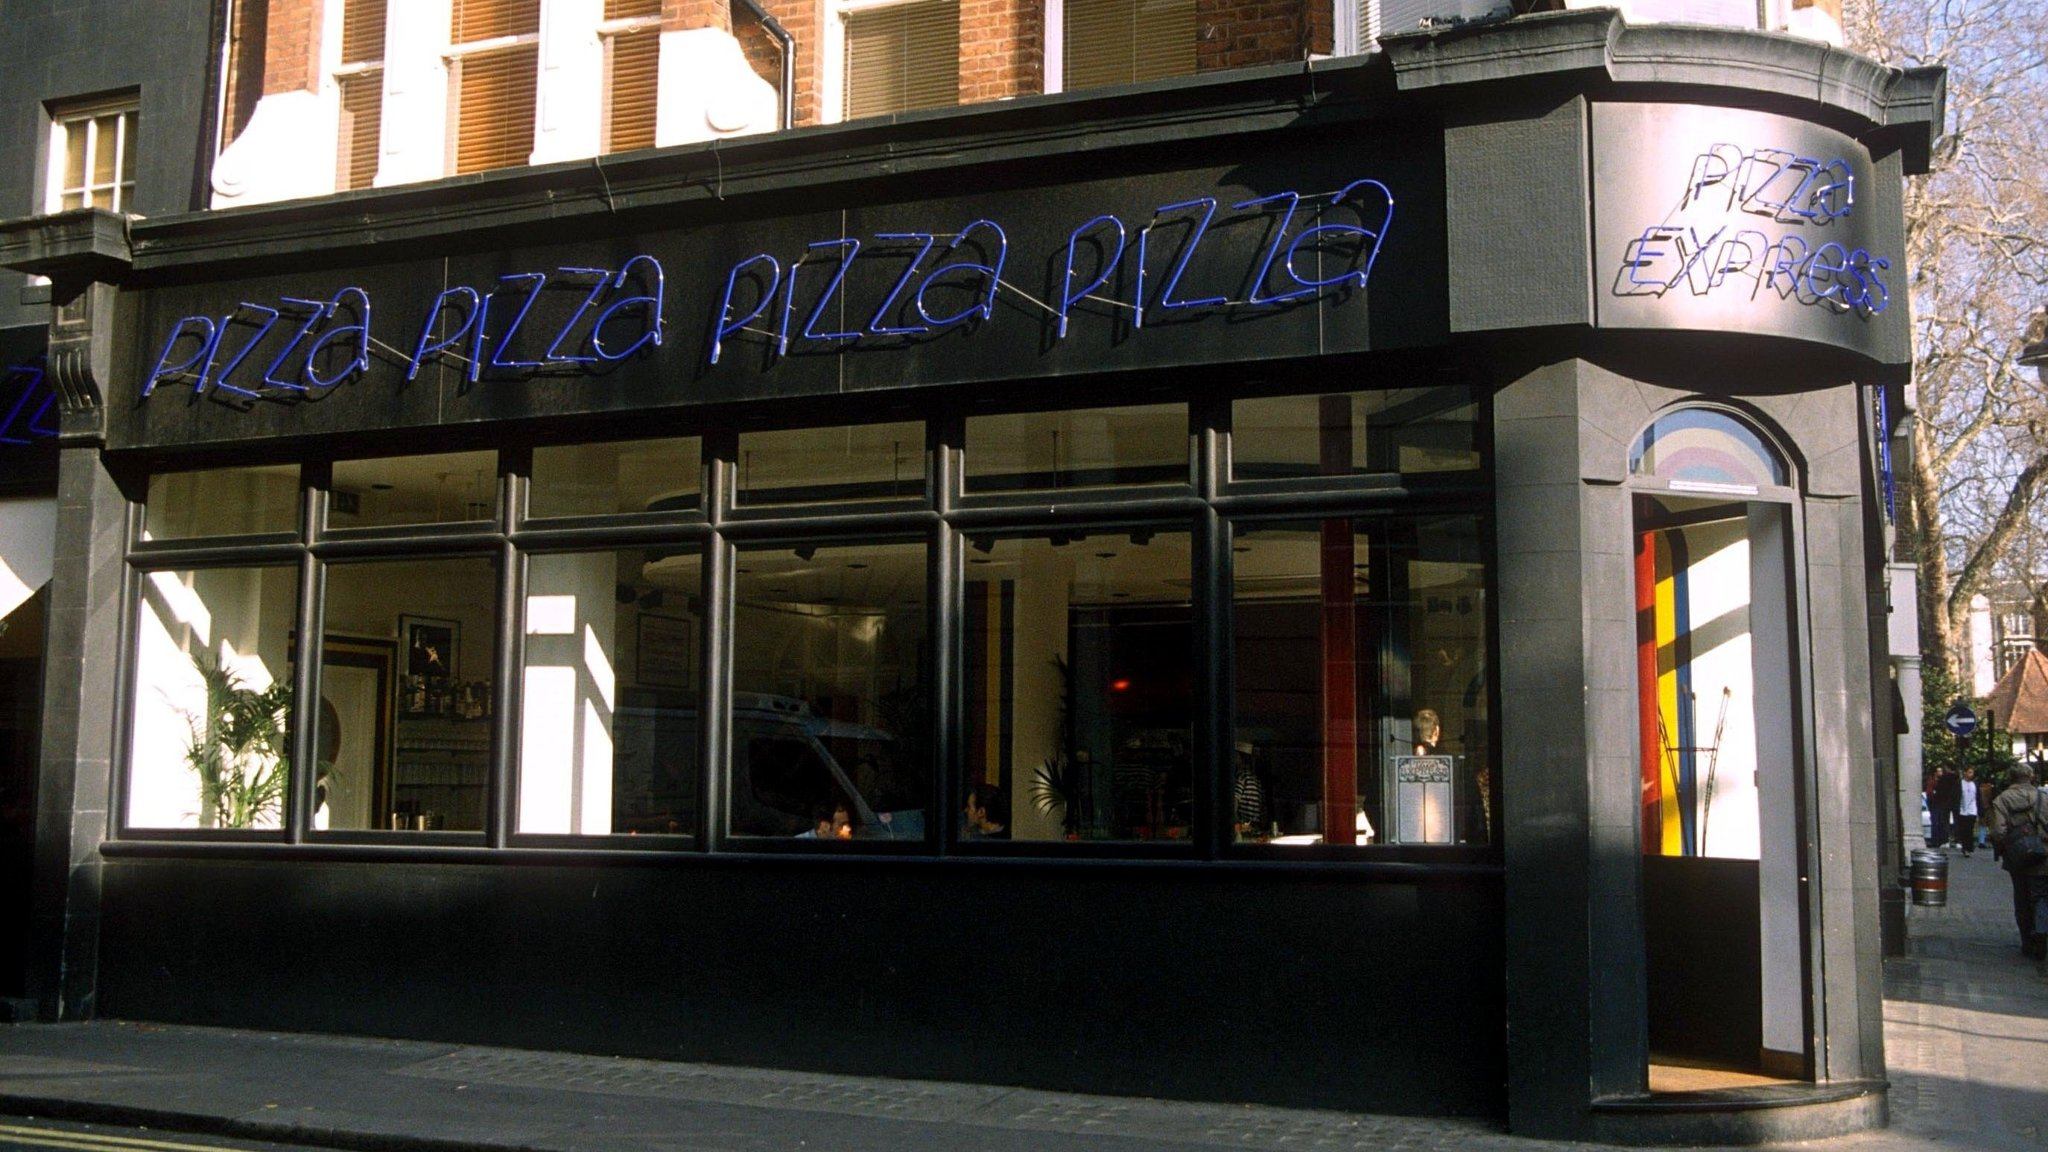 Pizzaexpress Lost Its Identity In A Corporate Wash